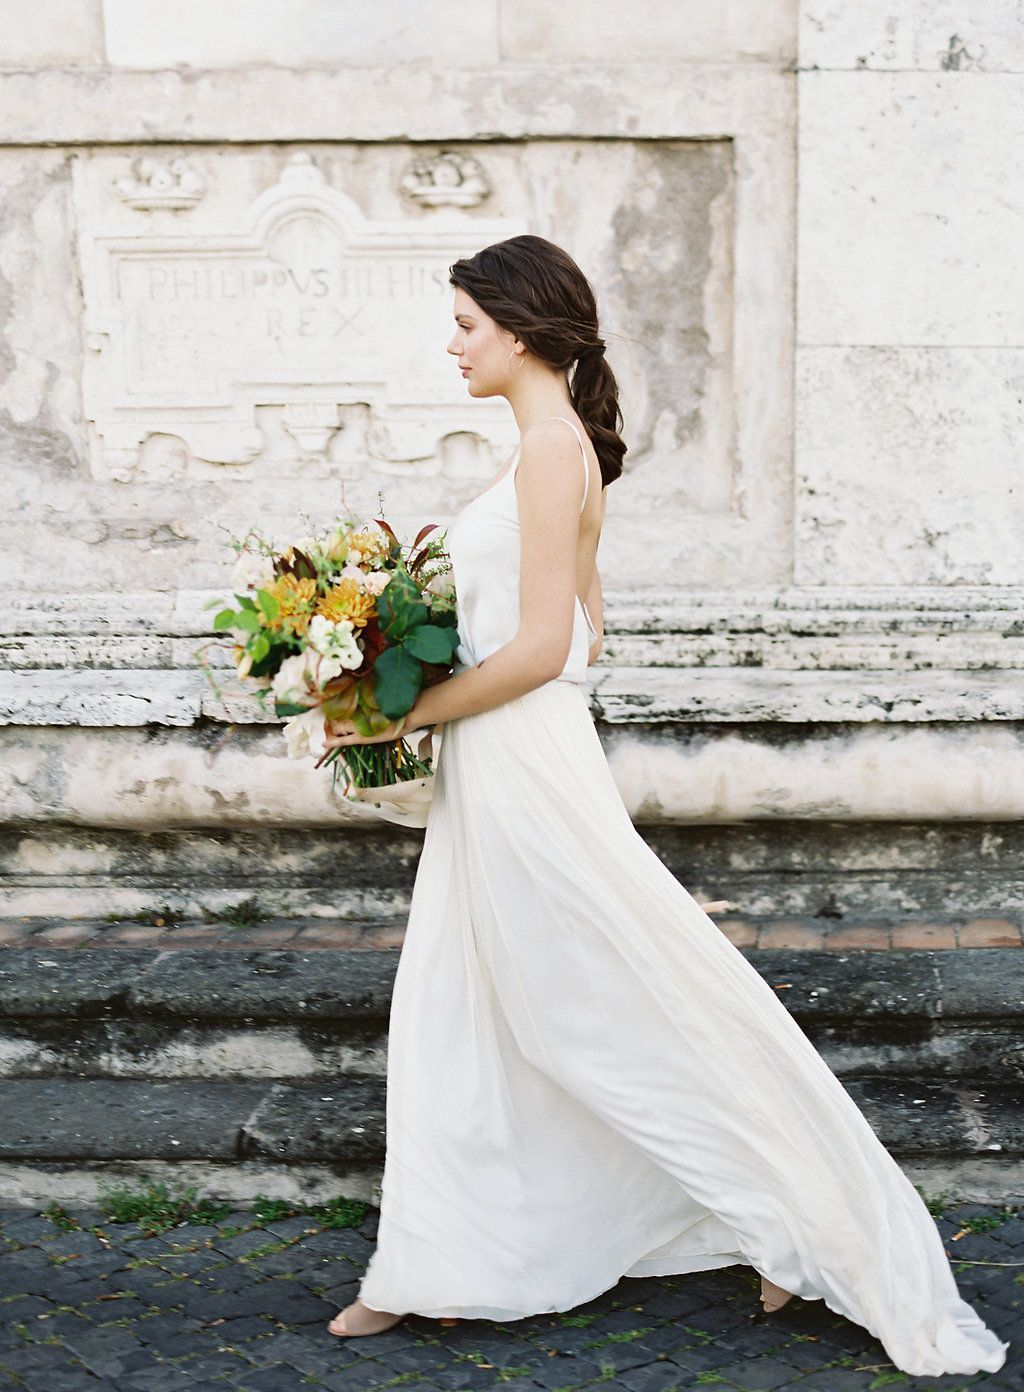 Vicki_Grafton_Photography_Rome_Italy_Wedding_Photographer_2017-24